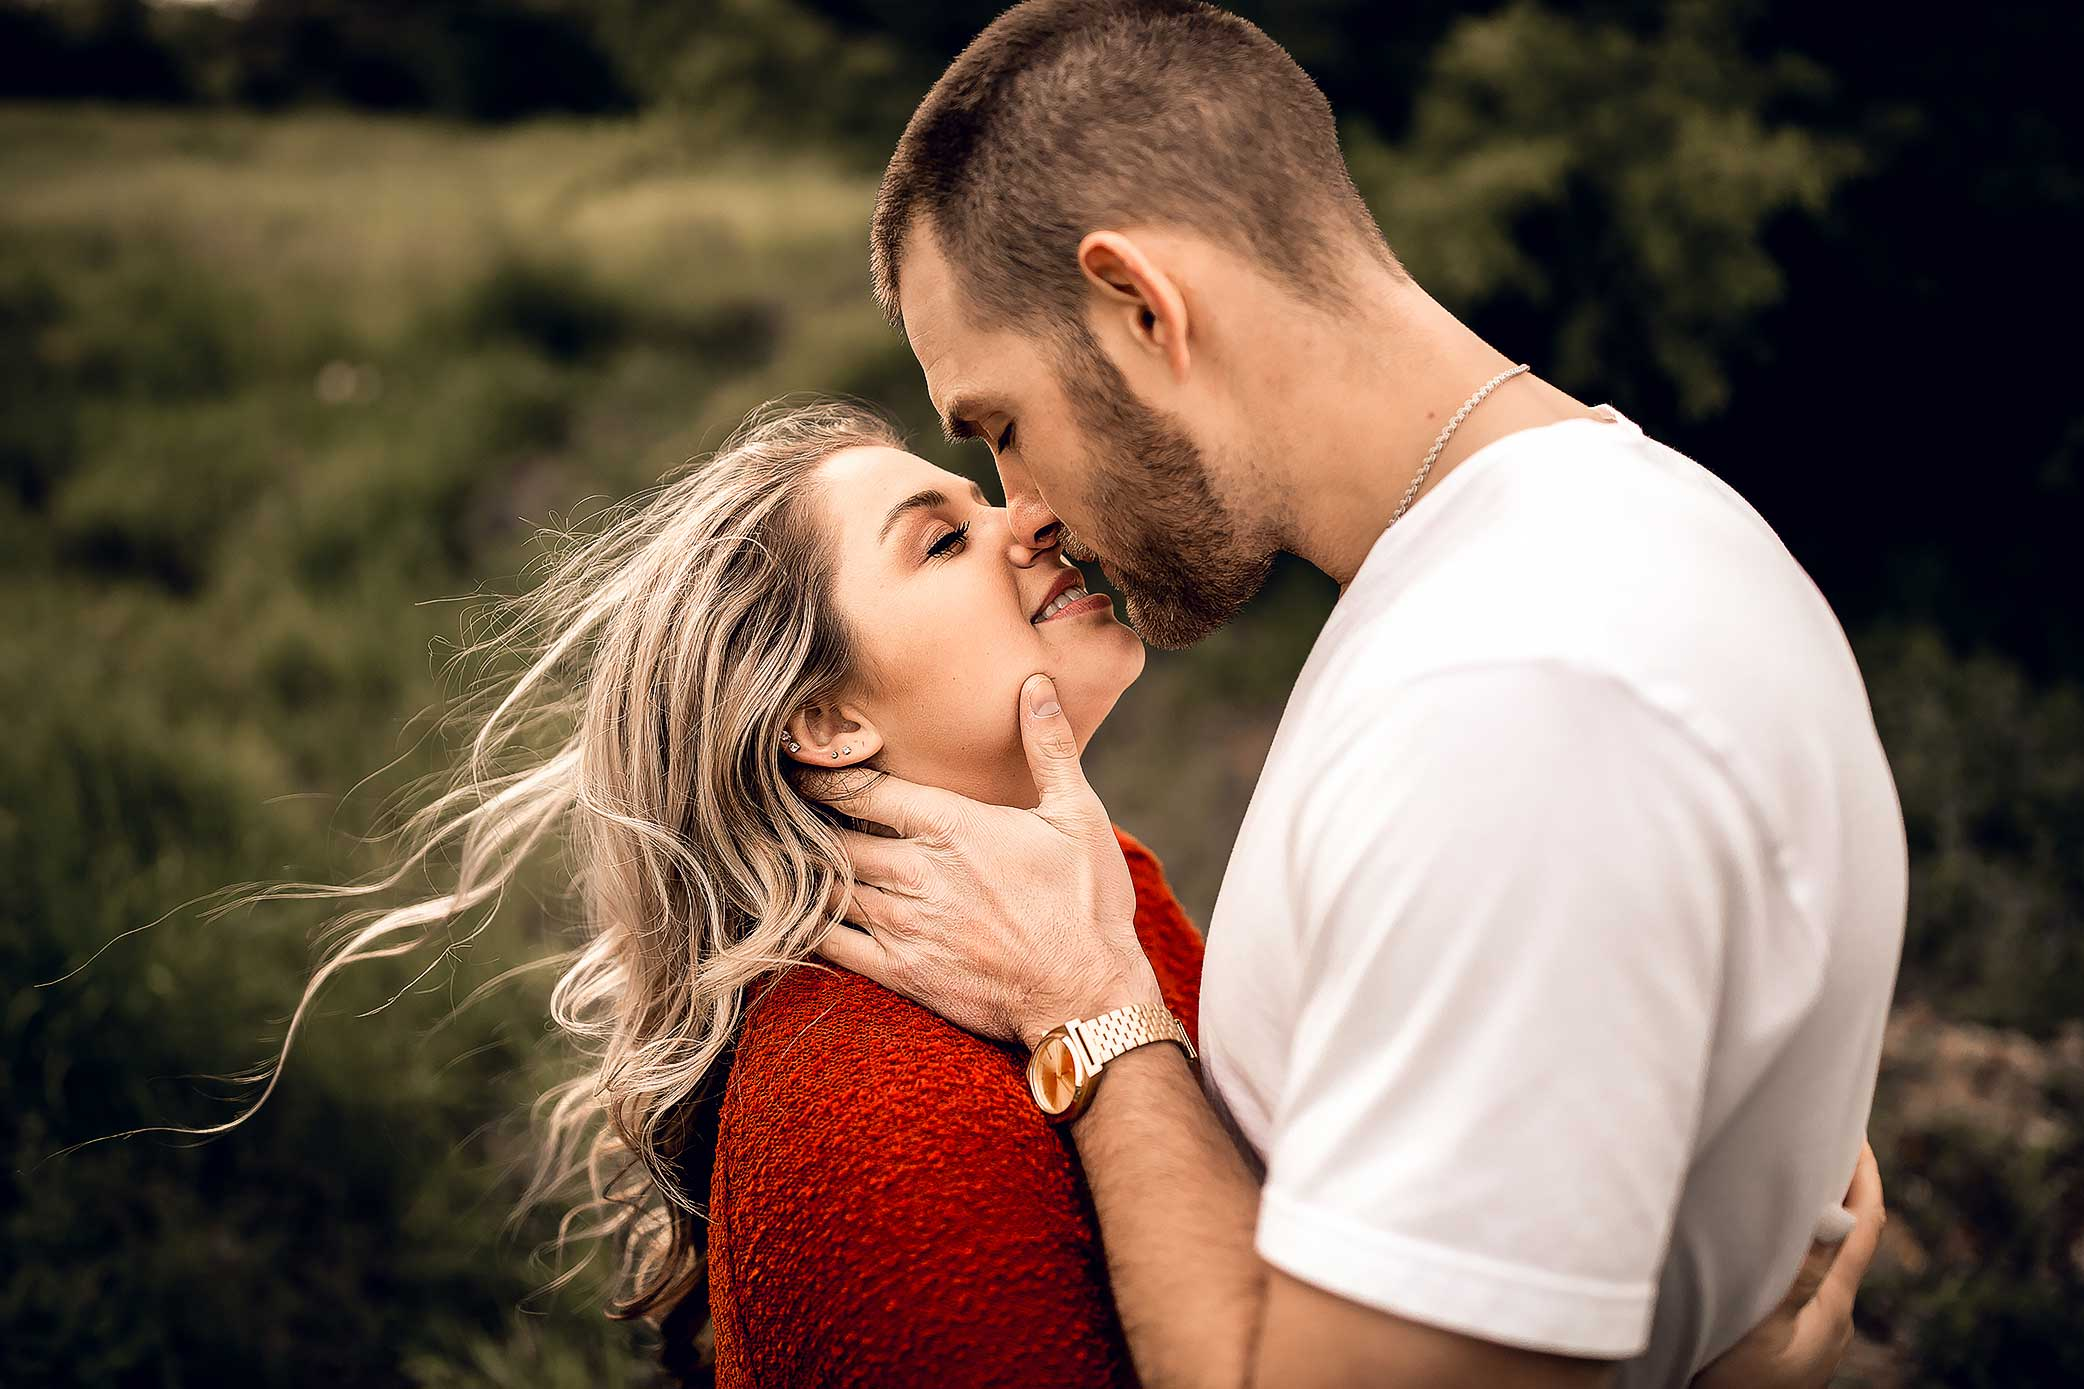 shelby-schiller-photography-lifestyle-couples-cupping-her-face-kissing-hair-blowing-in-wind.jpg